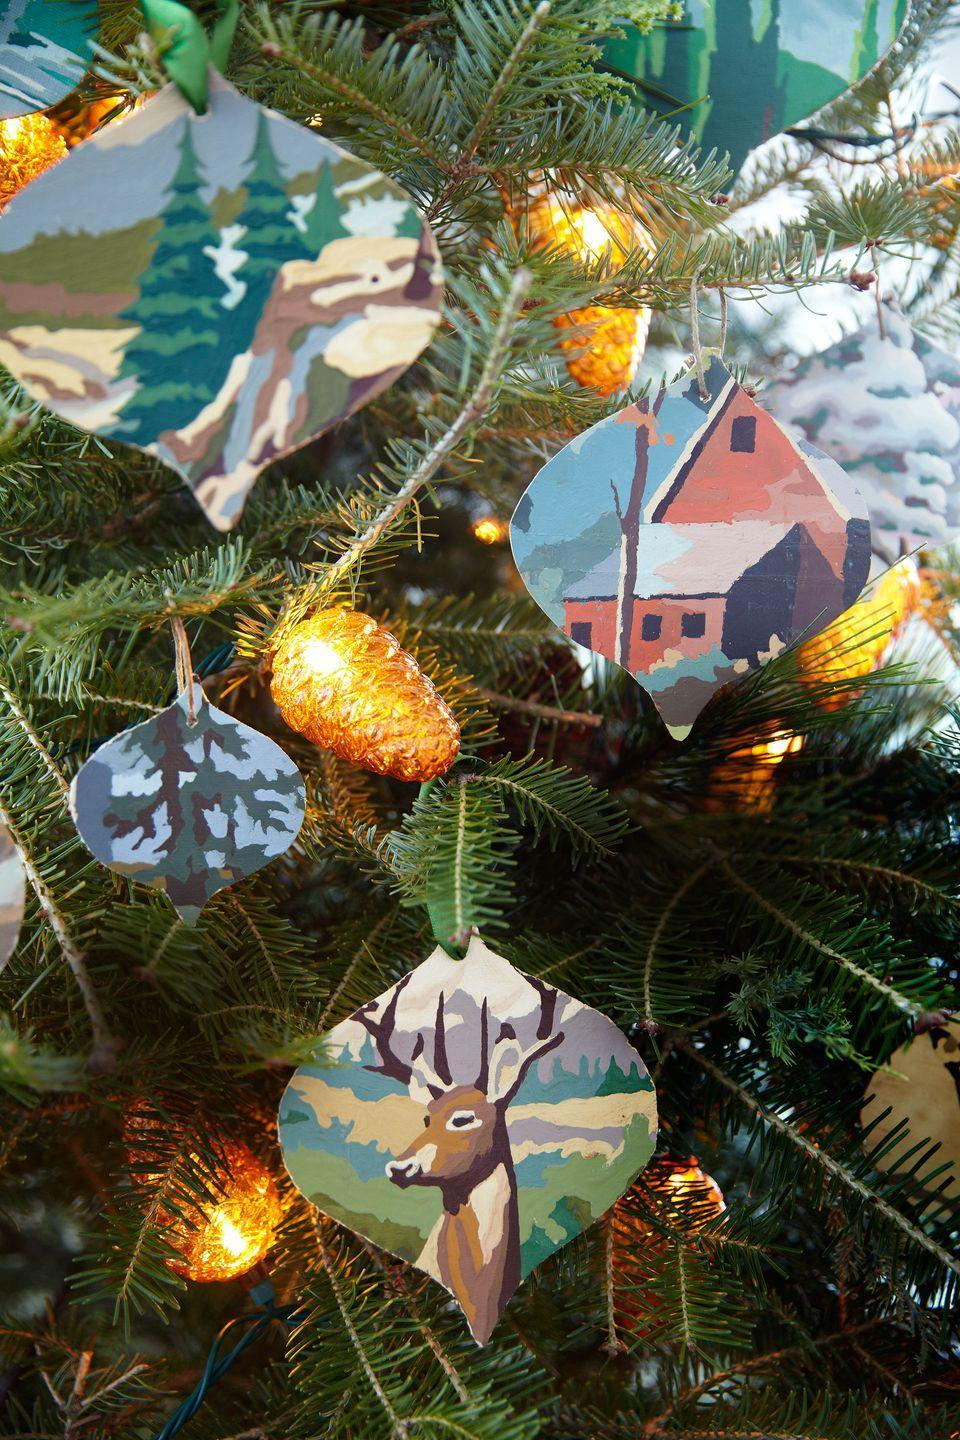 "<p>A dime a dozen at flea markets, a few of these amateur paintings can yield scads of one-of-a-kind tree trimmers. ""I've always been inspired by the shape of vintage ornaments,"" says <a href=""https://www.countryliving.com/home-design/decorating-ideas/g1570/serena-thompson-christmas-decorating-ideas/#slide-3"" rel=""nofollow noopener"" target=""_blank"" data-ylk=""slk:the creator"" class=""link rapid-noclick-resp"">the creator</a>, who cut out the silhouettes using heavy-duty scissors.</p><p><strong><a href=""https://www.countryliving.com/ornament"" rel=""nofollow noopener"" target=""_blank"" data-ylk=""slk:Get the template"" class=""link rapid-noclick-resp"">Get the template</a>.</strong></p>"